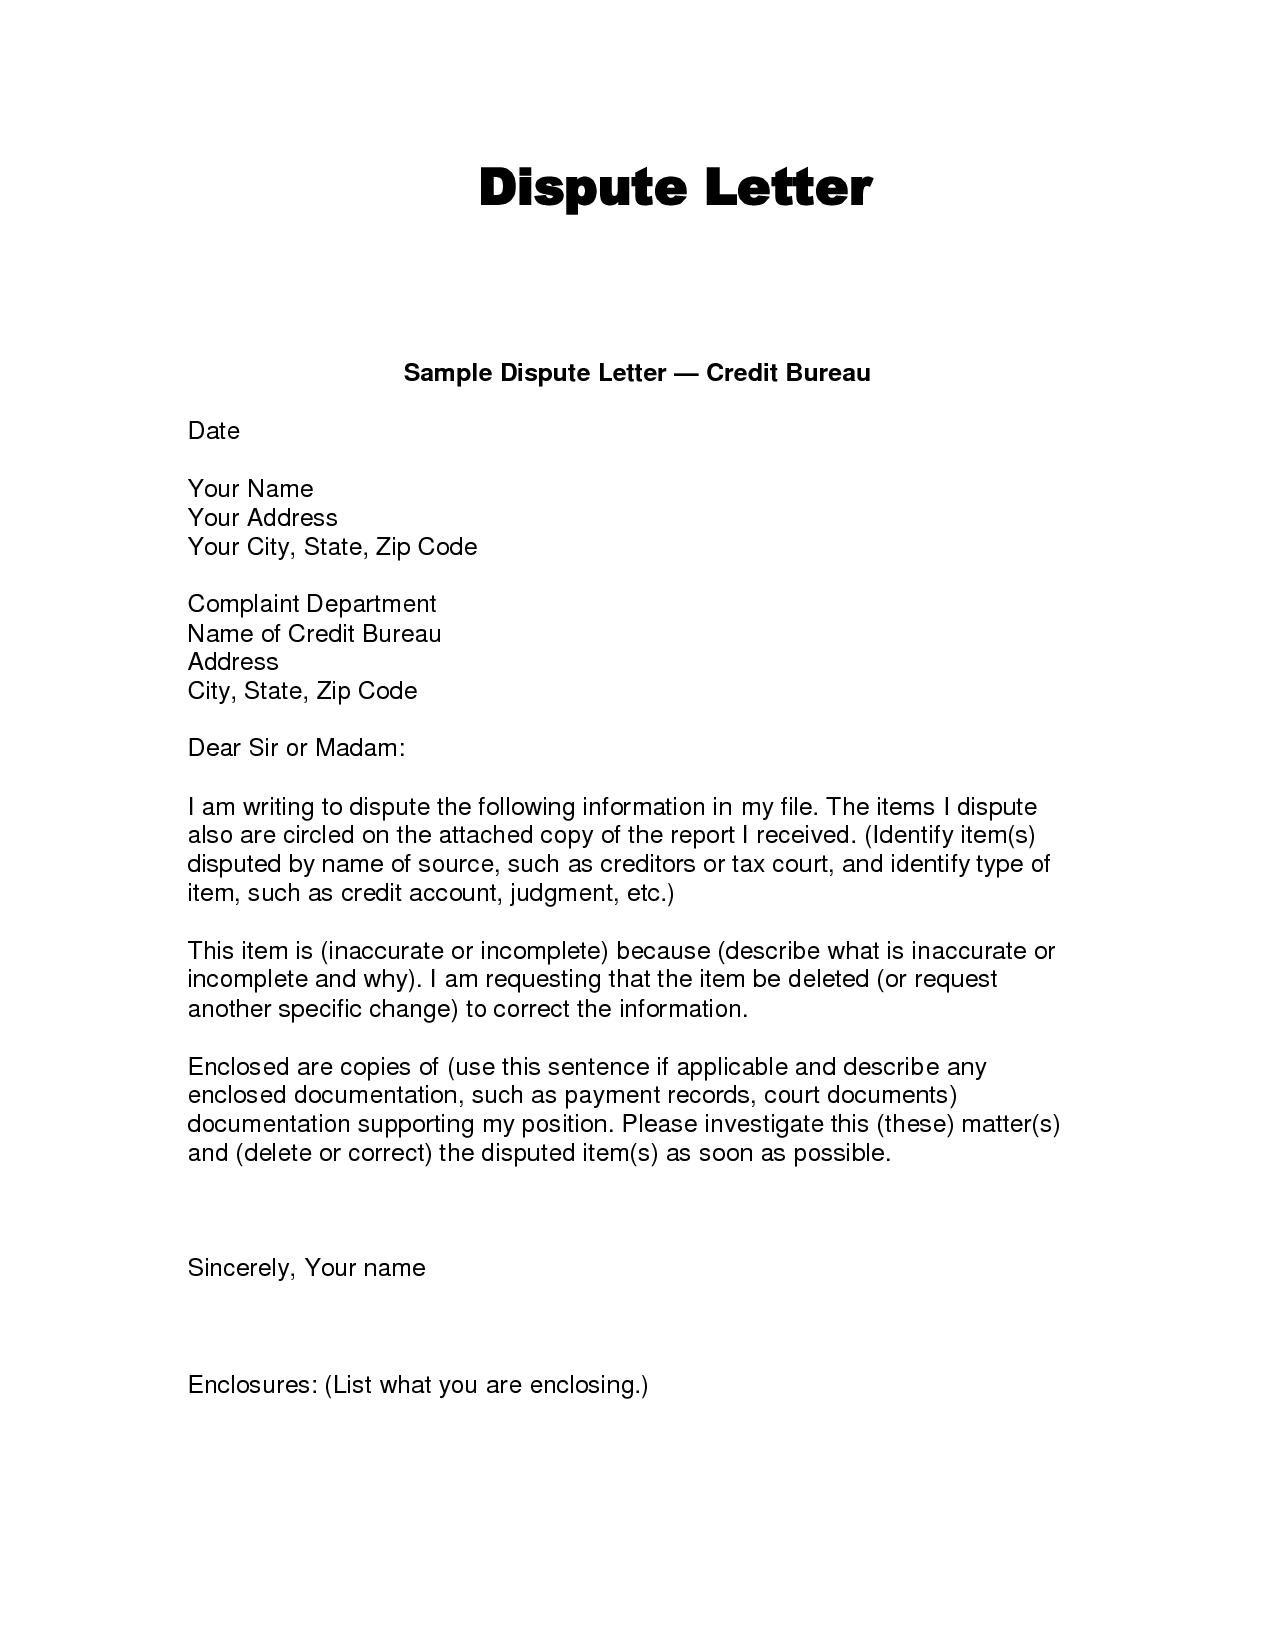 Template for Credit Report Dispute Letter - Credit Dispute Letter Templates Acurnamedia